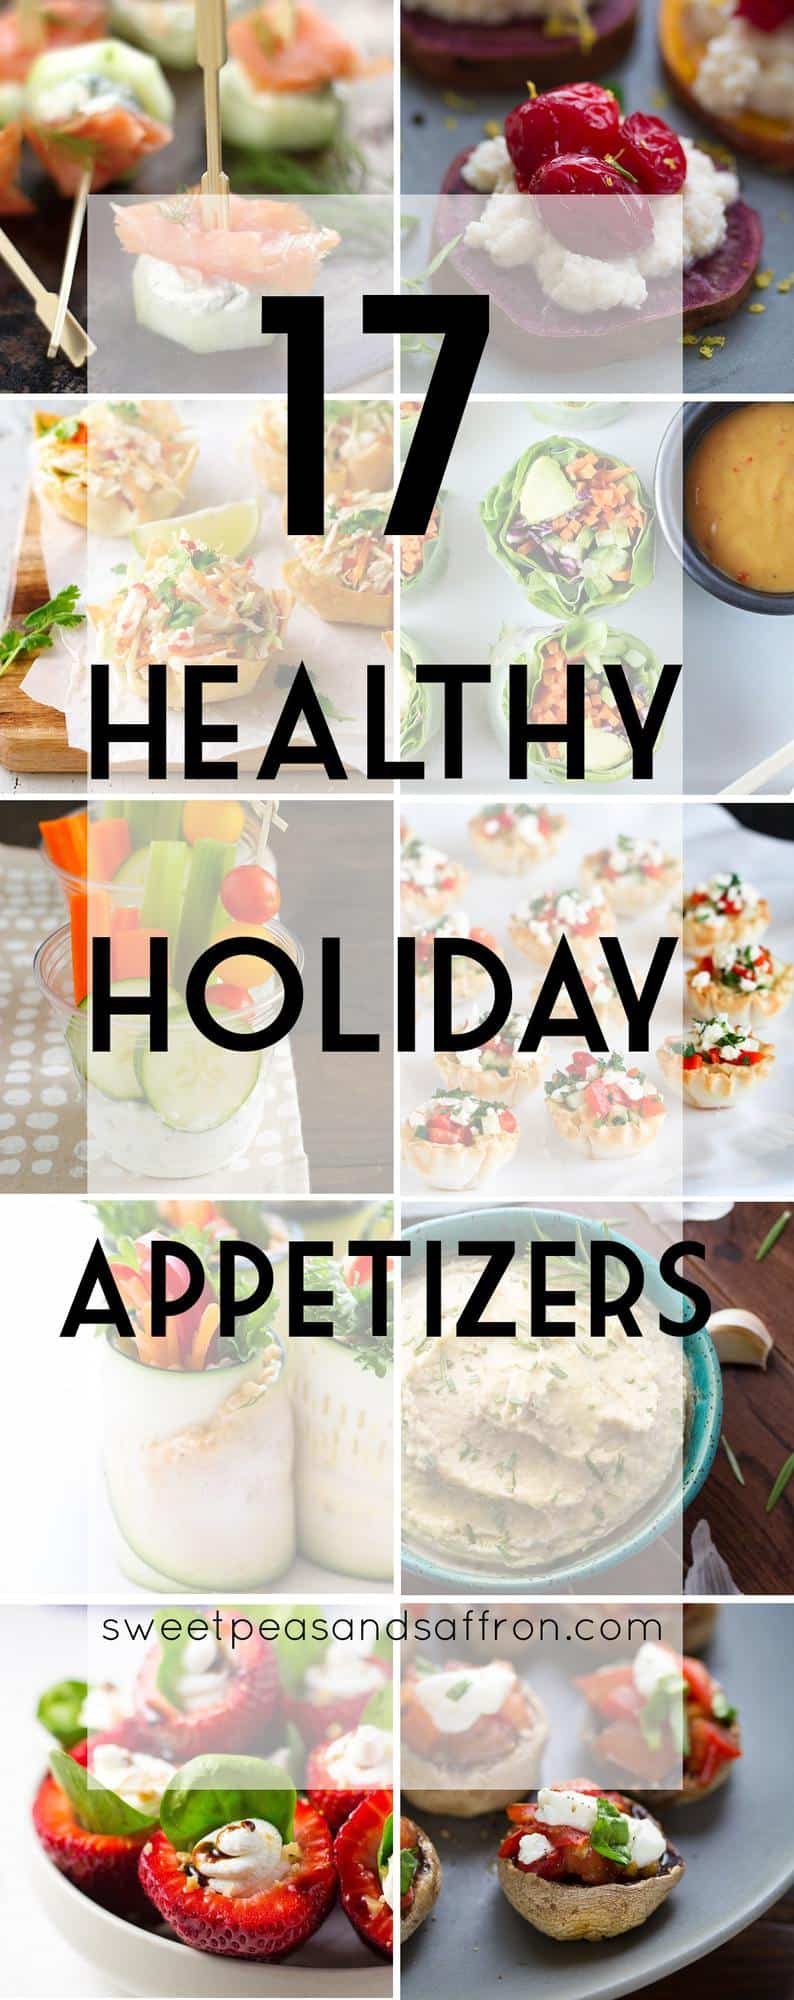 collage image with 17 healthy holiday appetizers